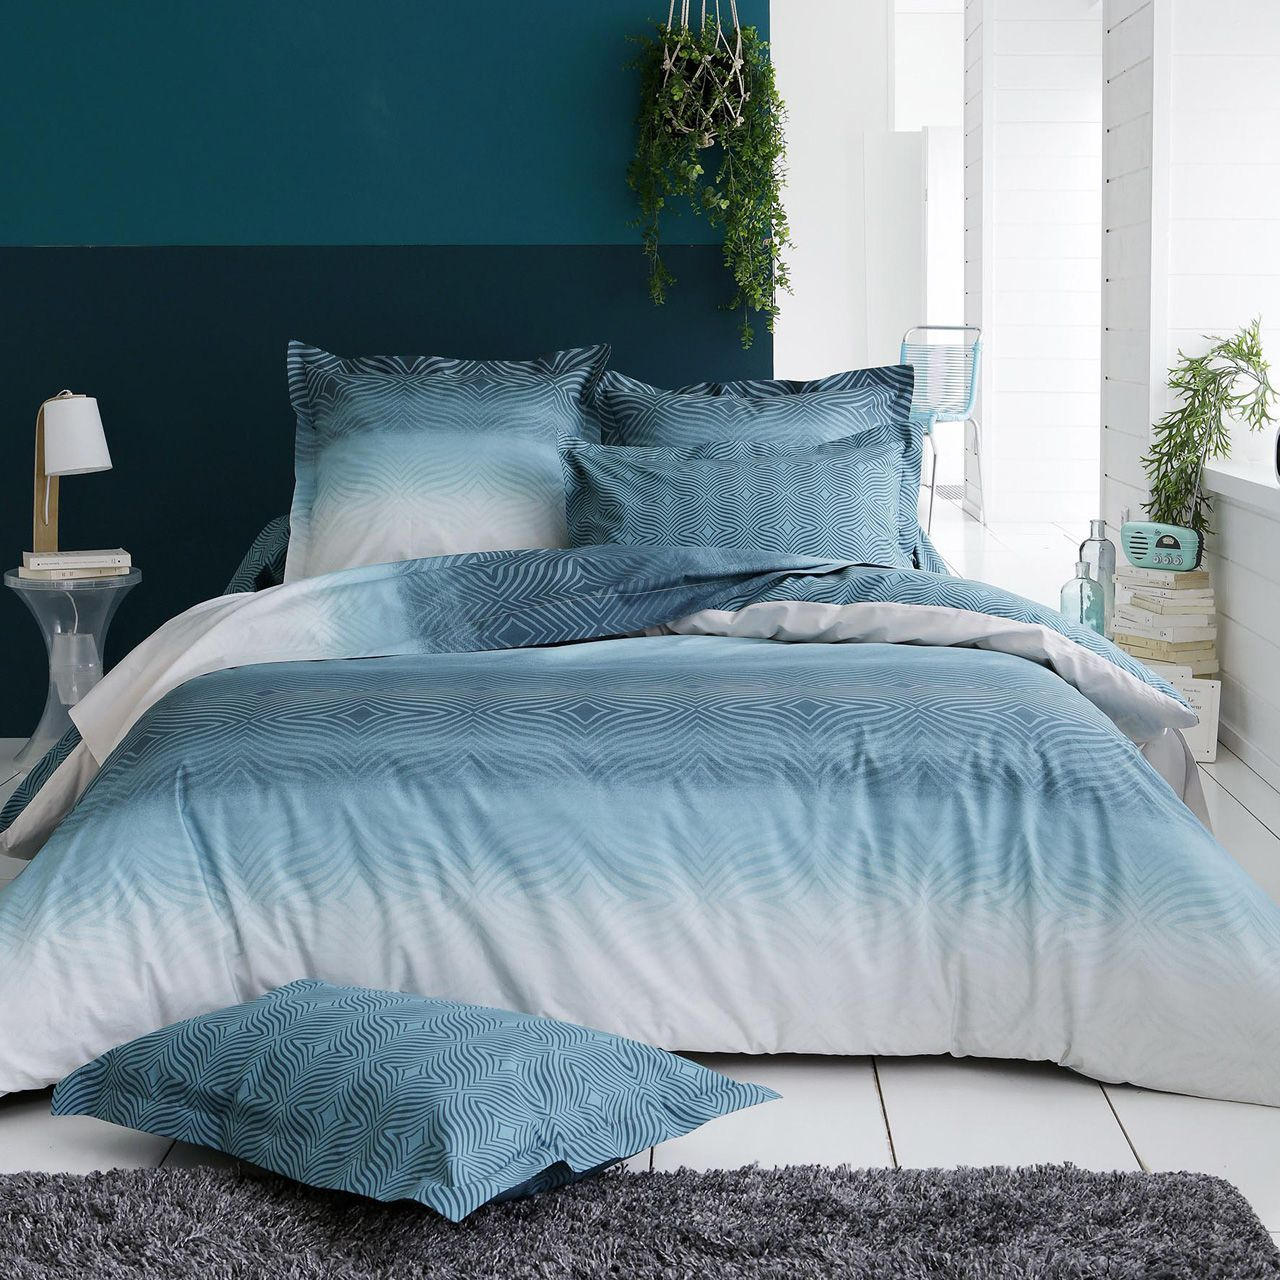 housse de couette james motifs g om triques d grad bleu percale 140x200. Black Bedroom Furniture Sets. Home Design Ideas